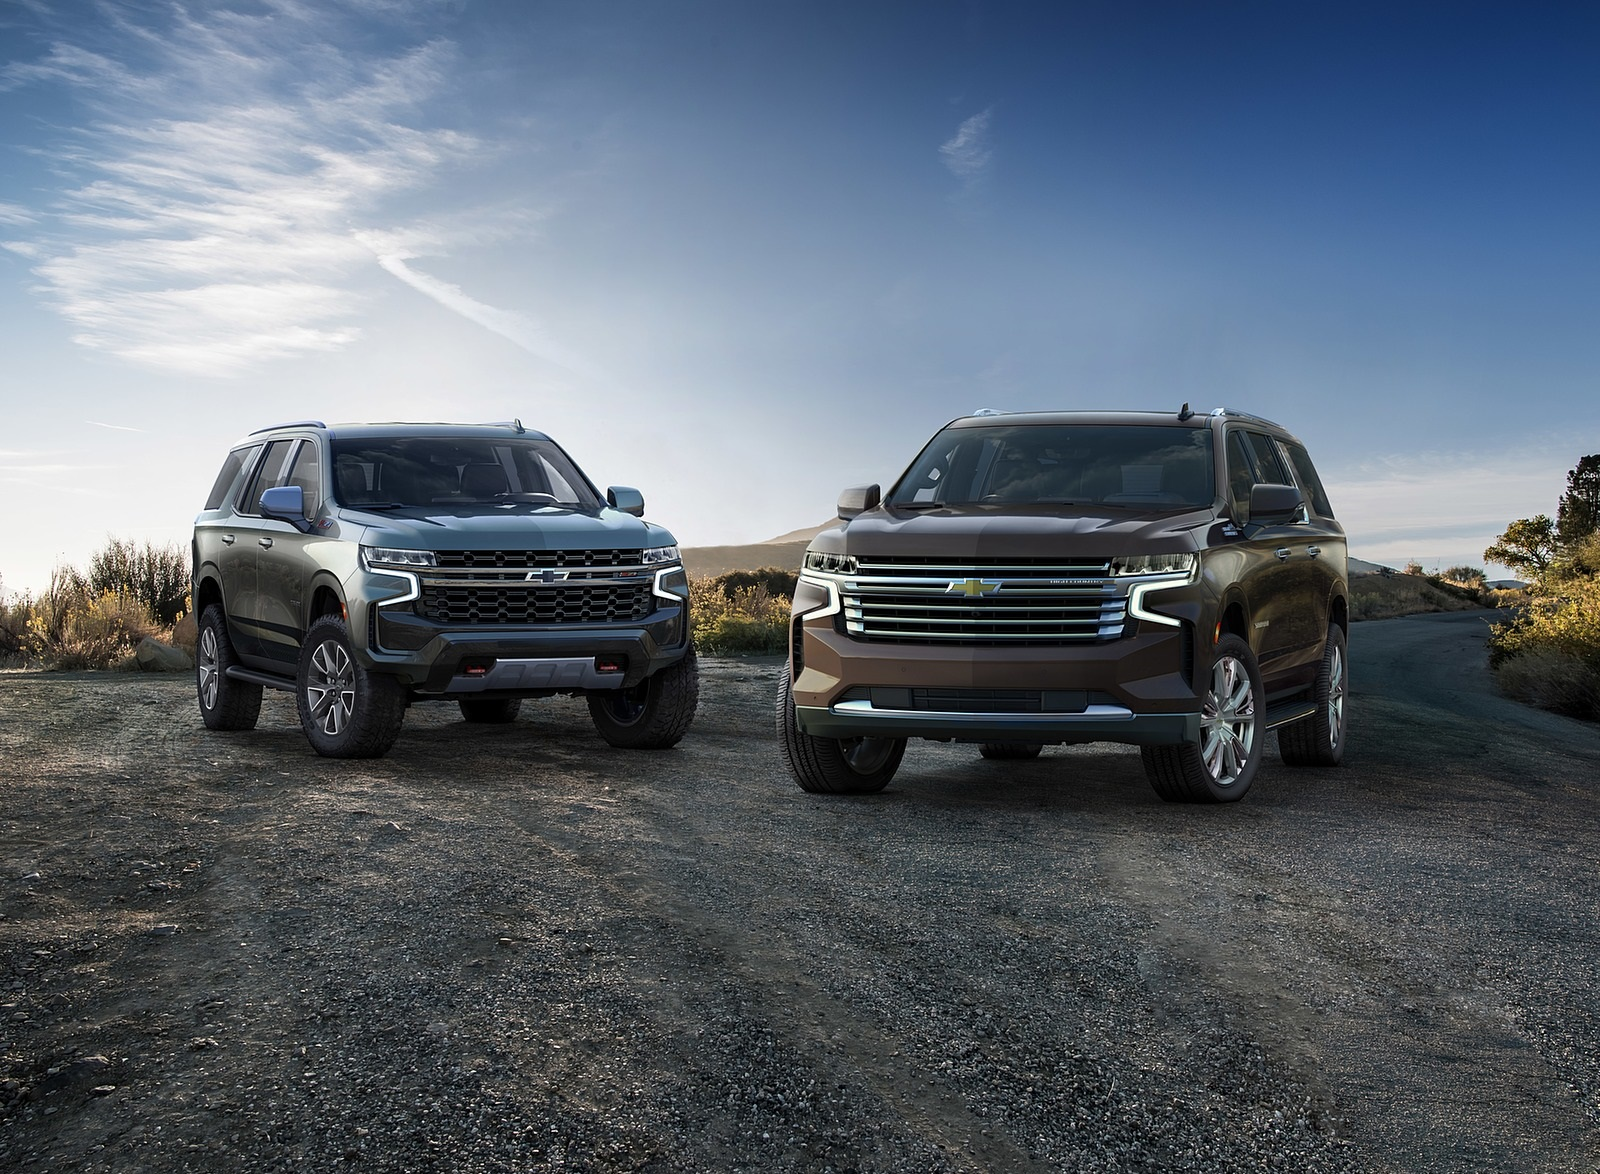 2021 Chevrolet Suburban and Tahoe Wallpapers (4)